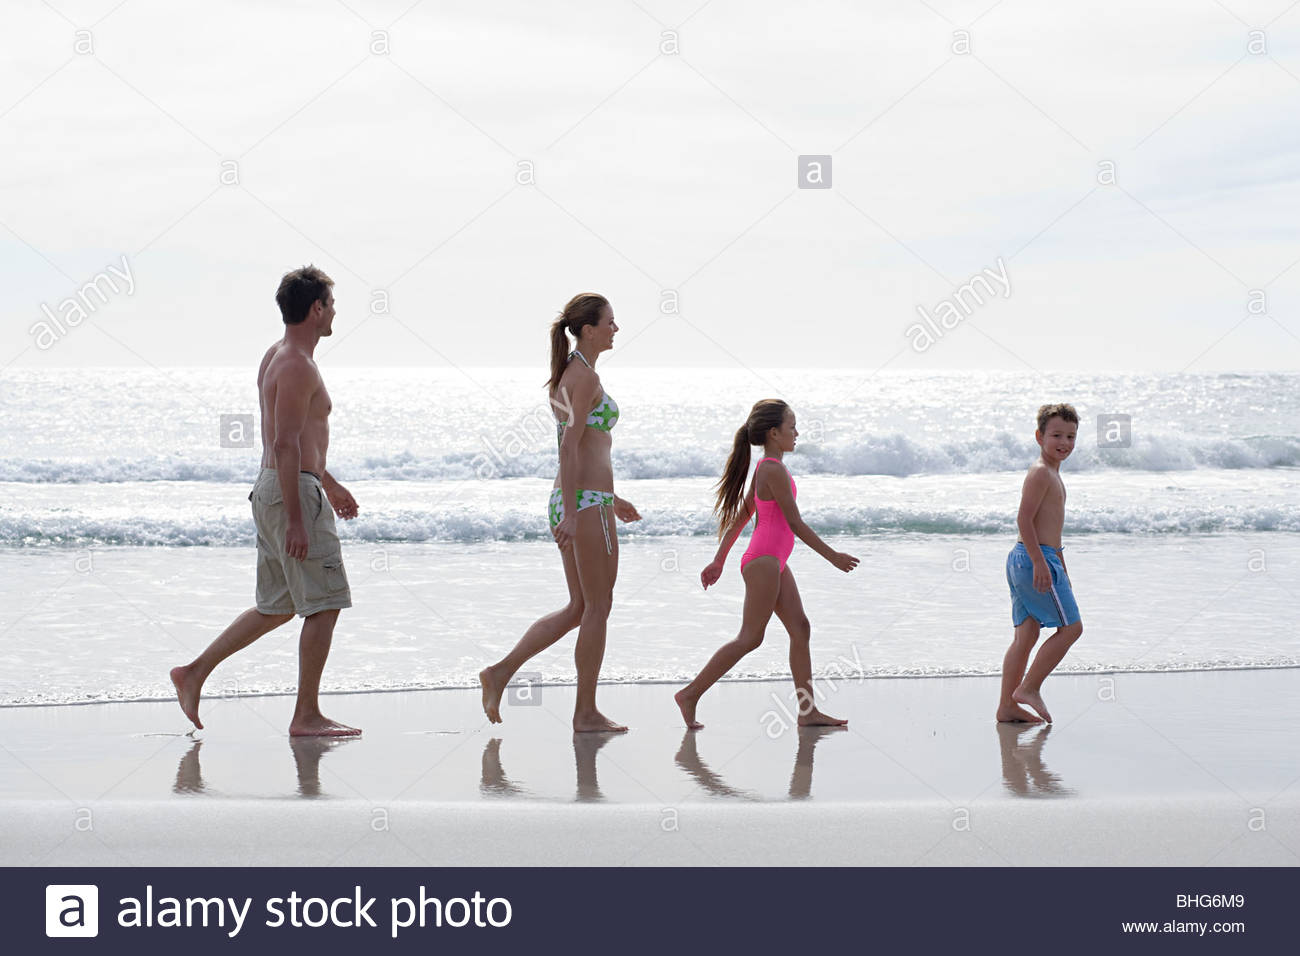 Family walking along the beach by the water's edge - Stock Image